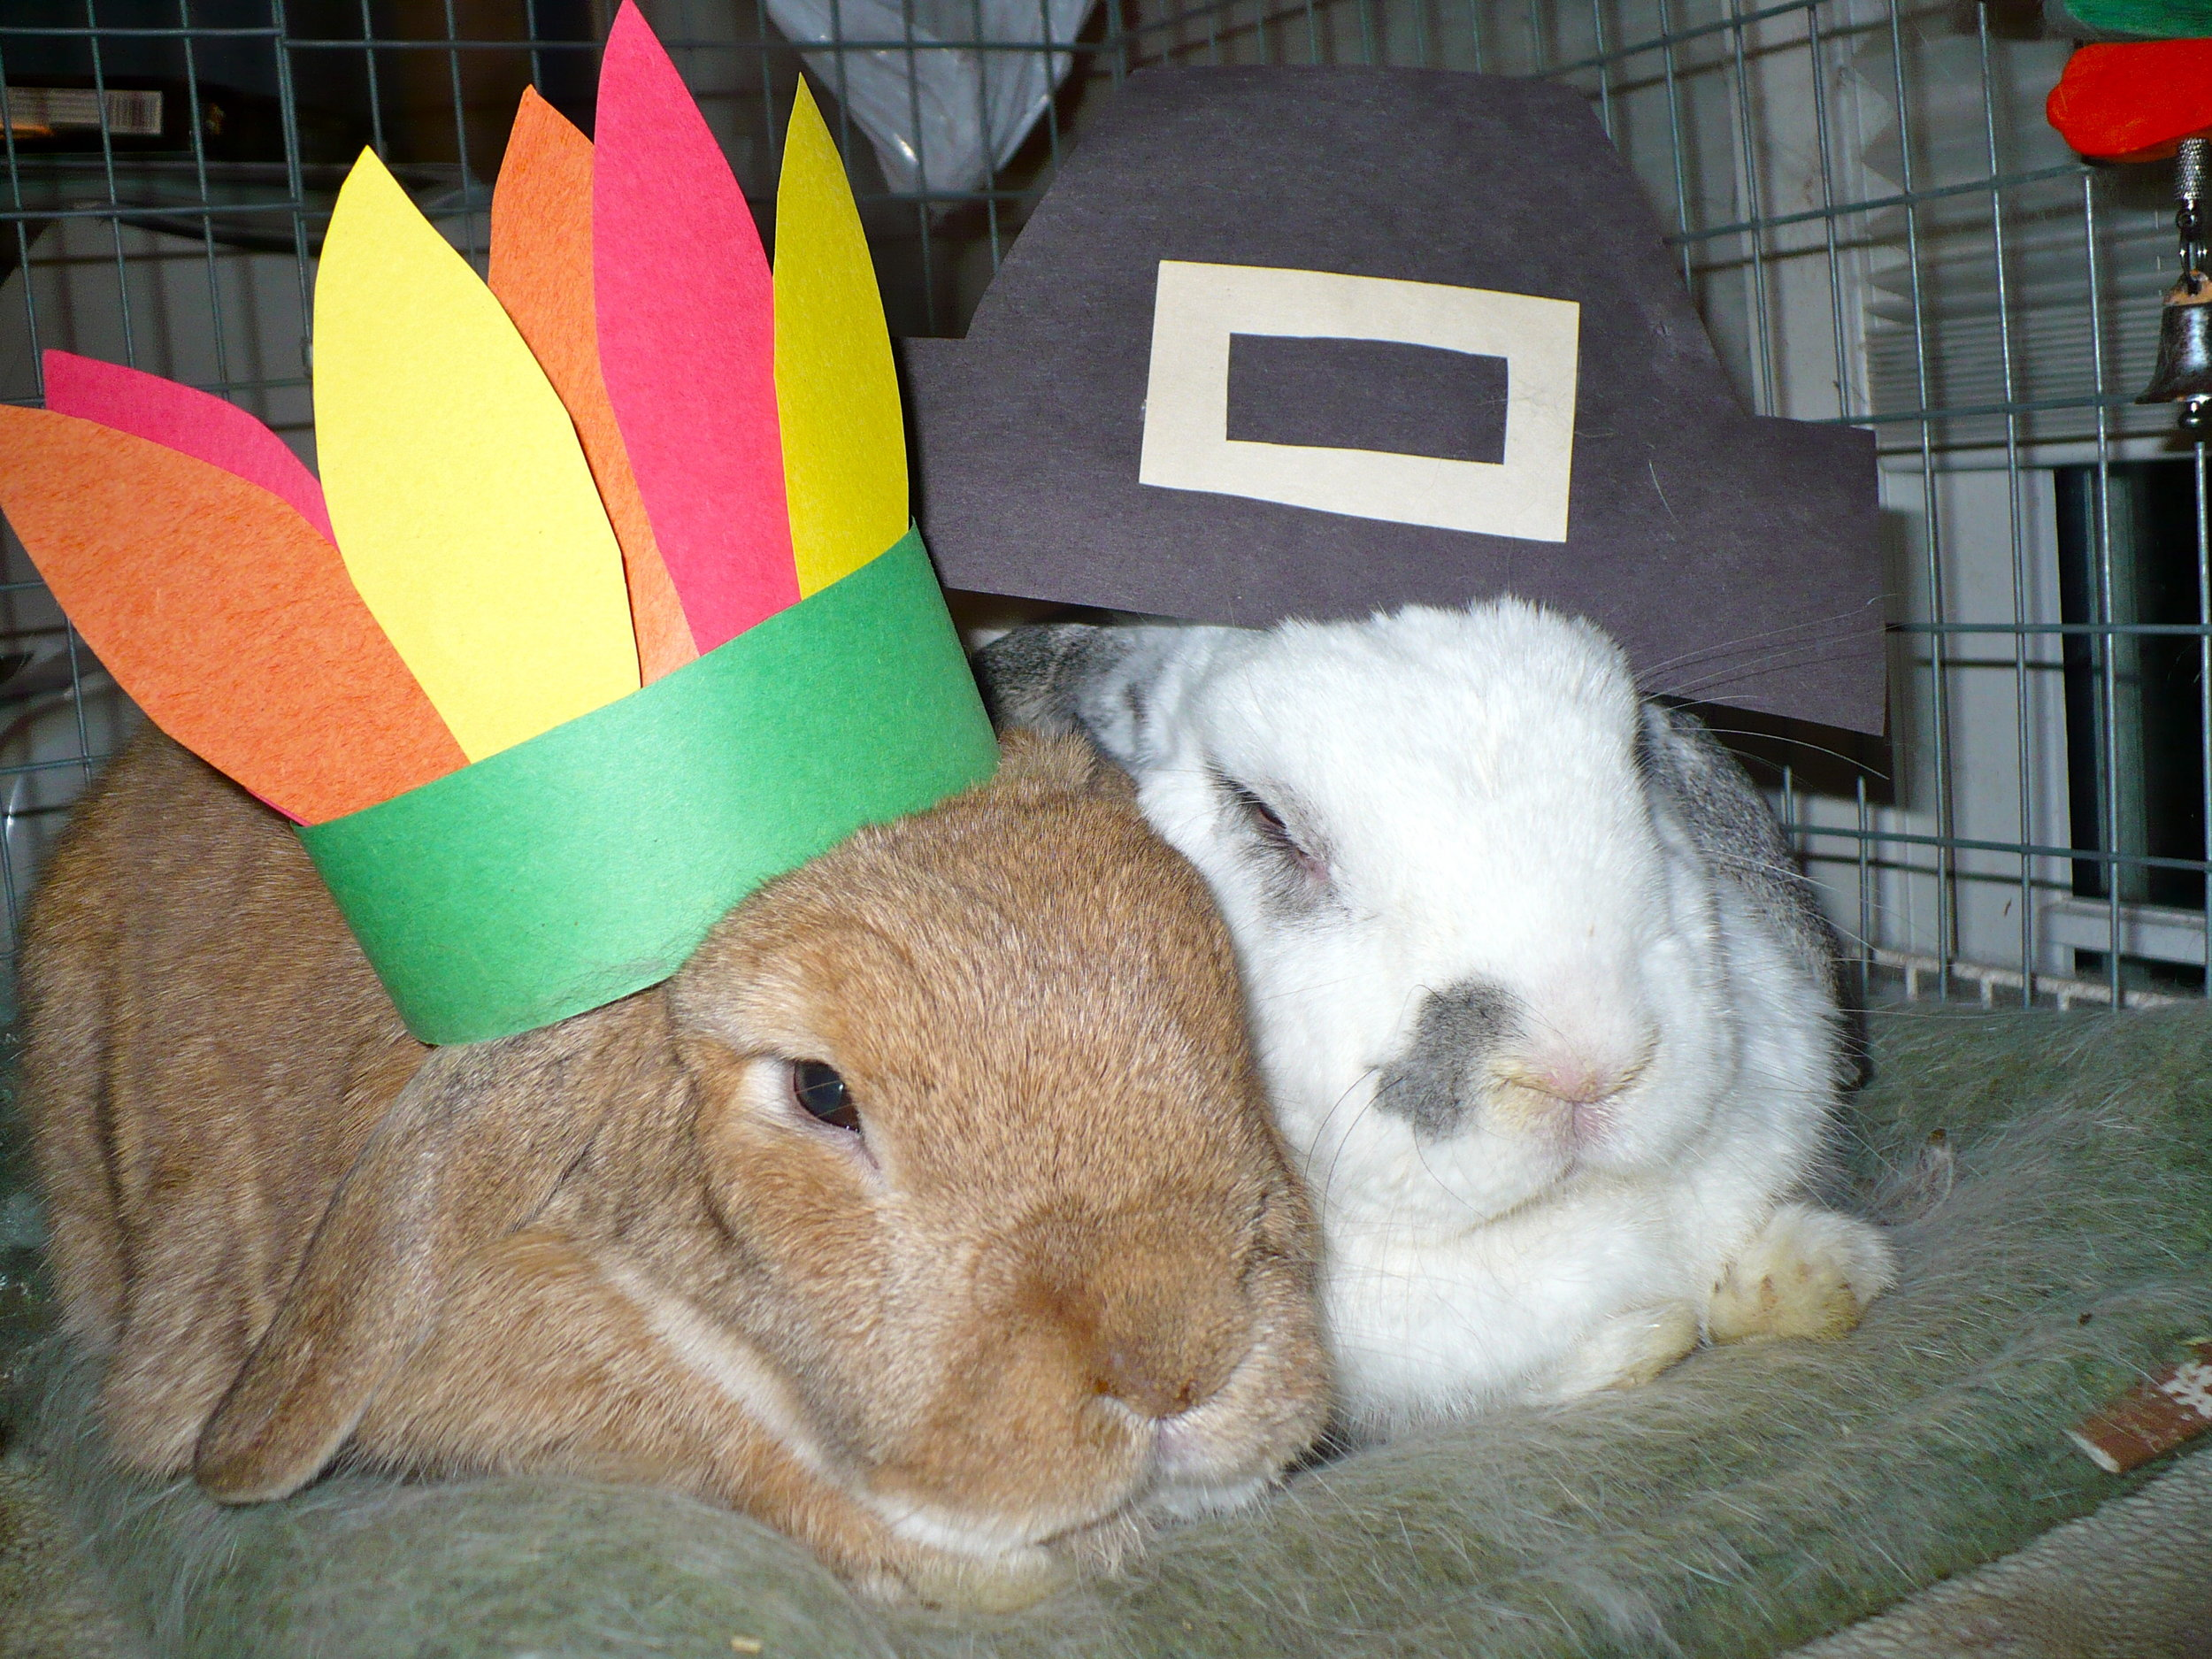 Bunnies Wear Their Thanksgiving Hats for the Holiday